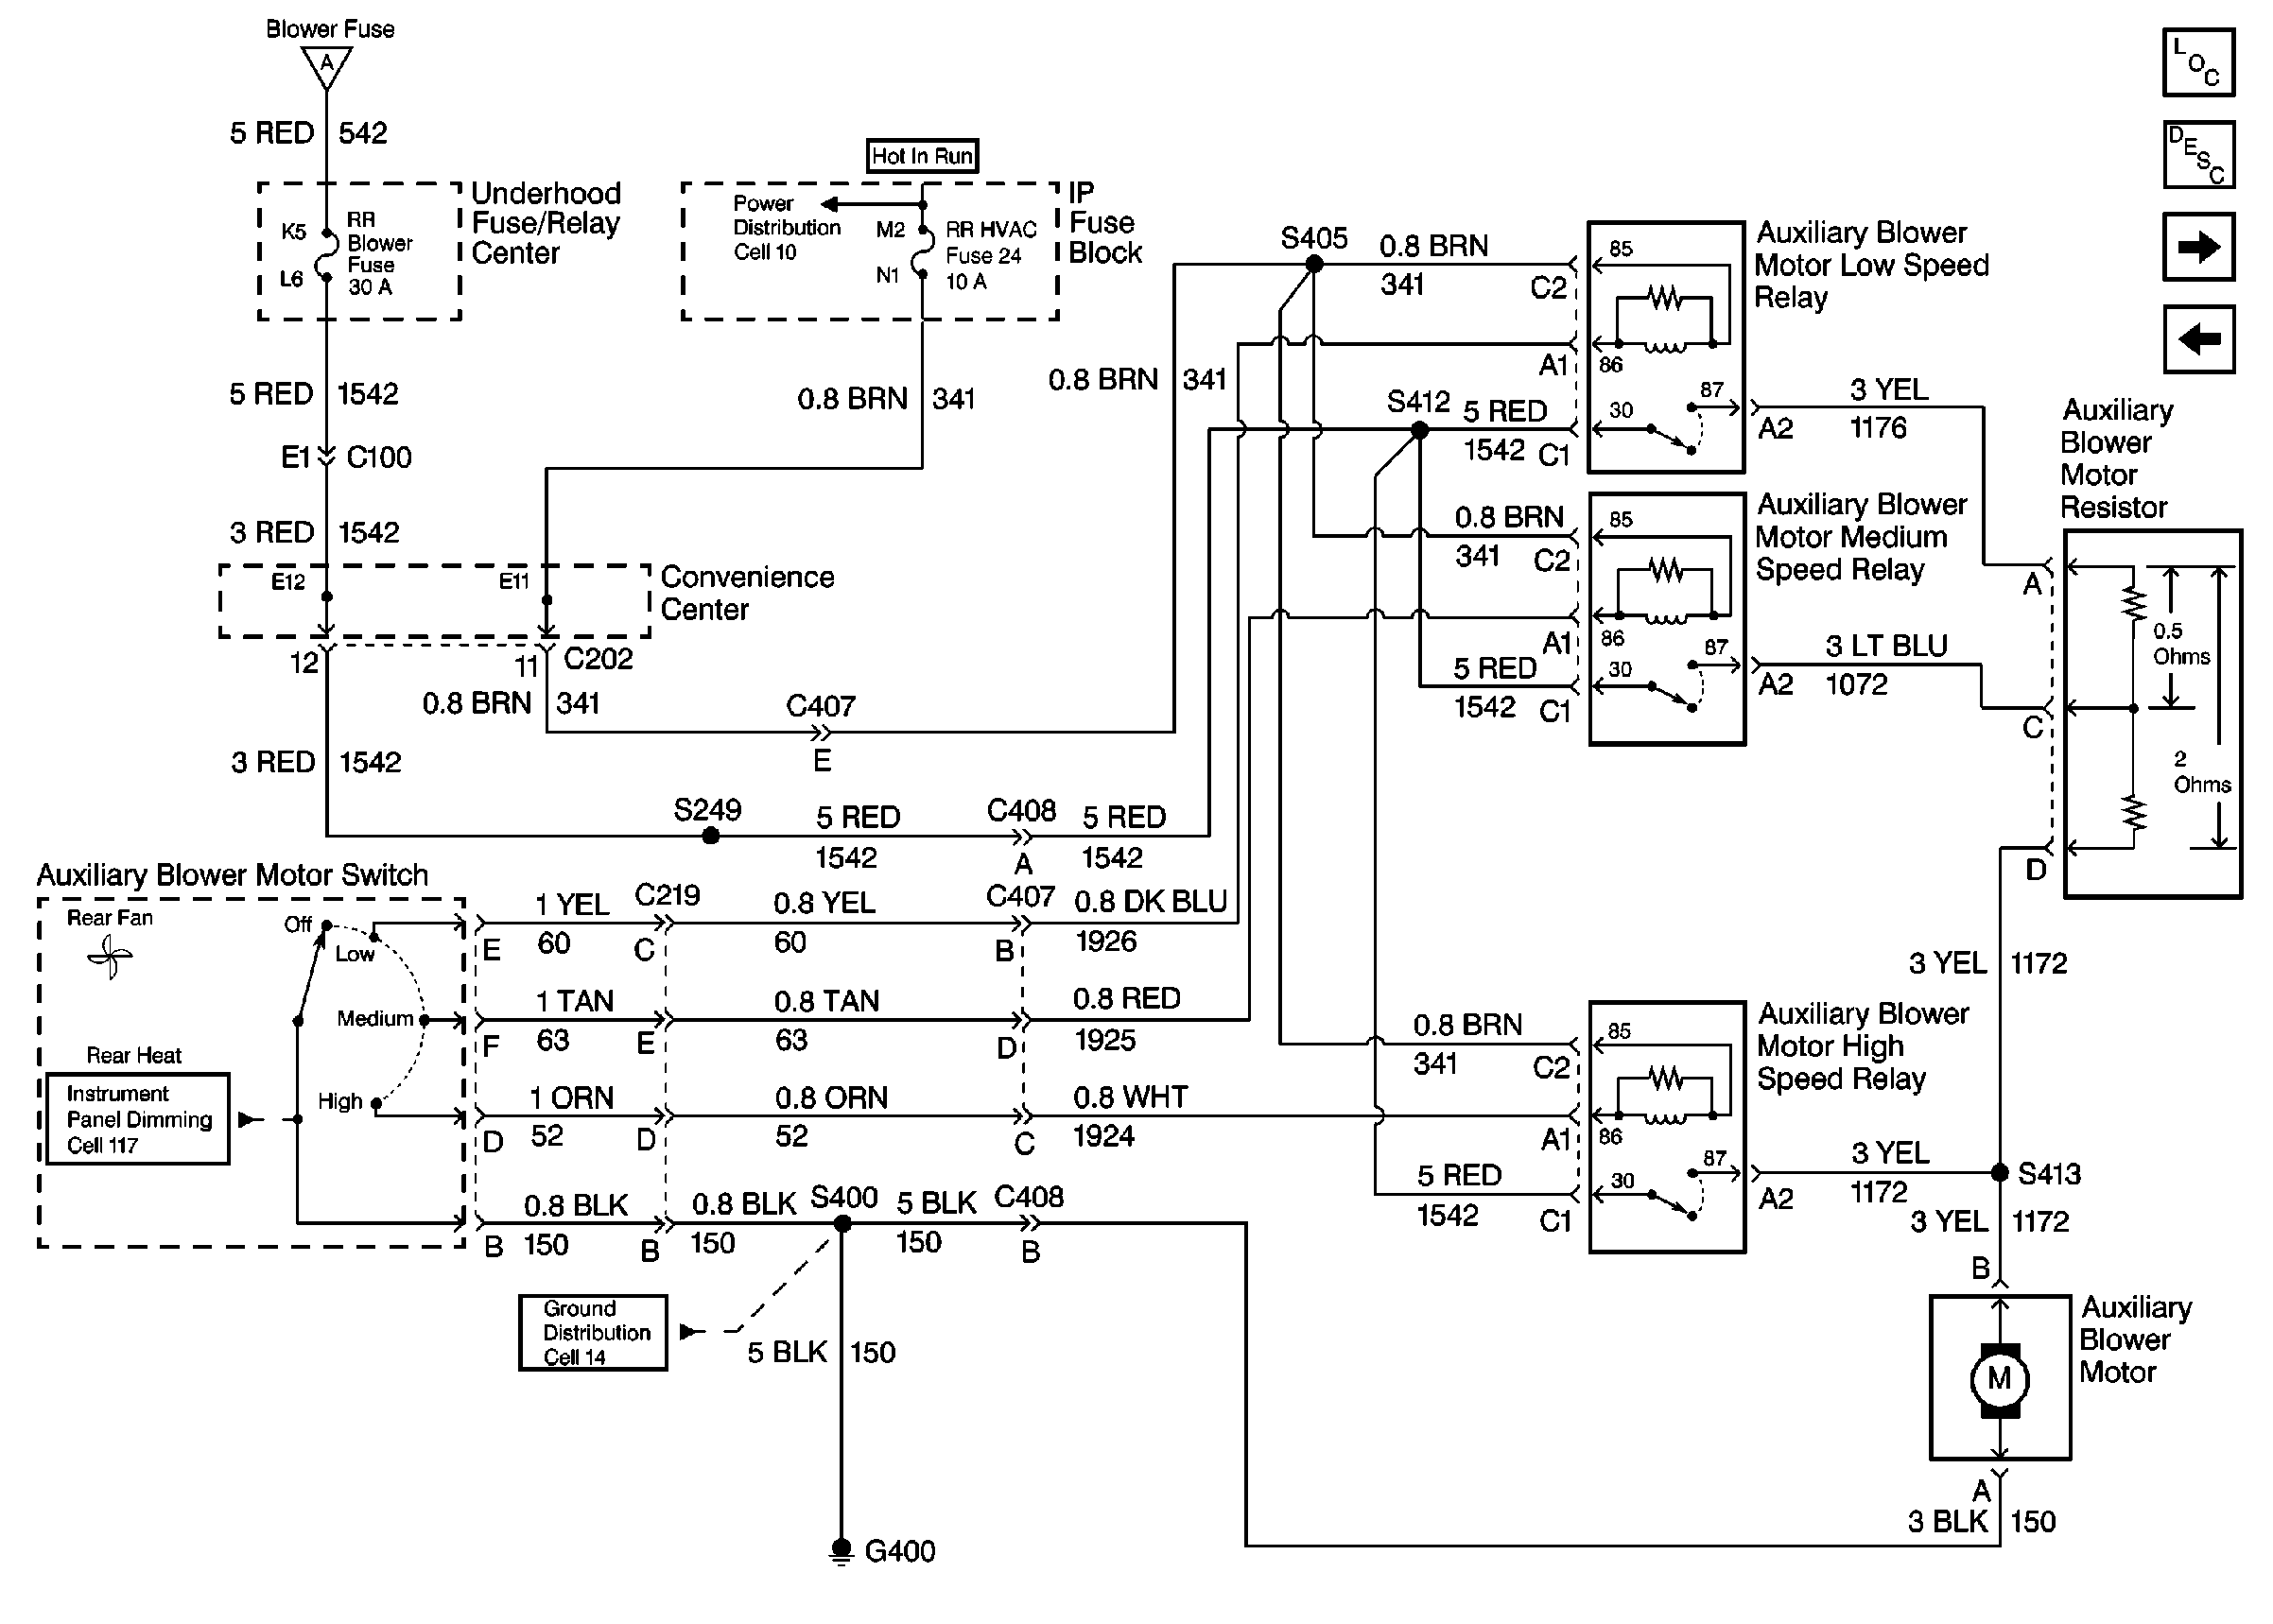 chevy express 3500 wiring diagram fuse sswNSNp kenwood ddx7017 wiring diagram kenwood ddx7017 connector \u2022 wiring Kenwood Wiring Harness Diagram at pacquiaovsvargaslive.co